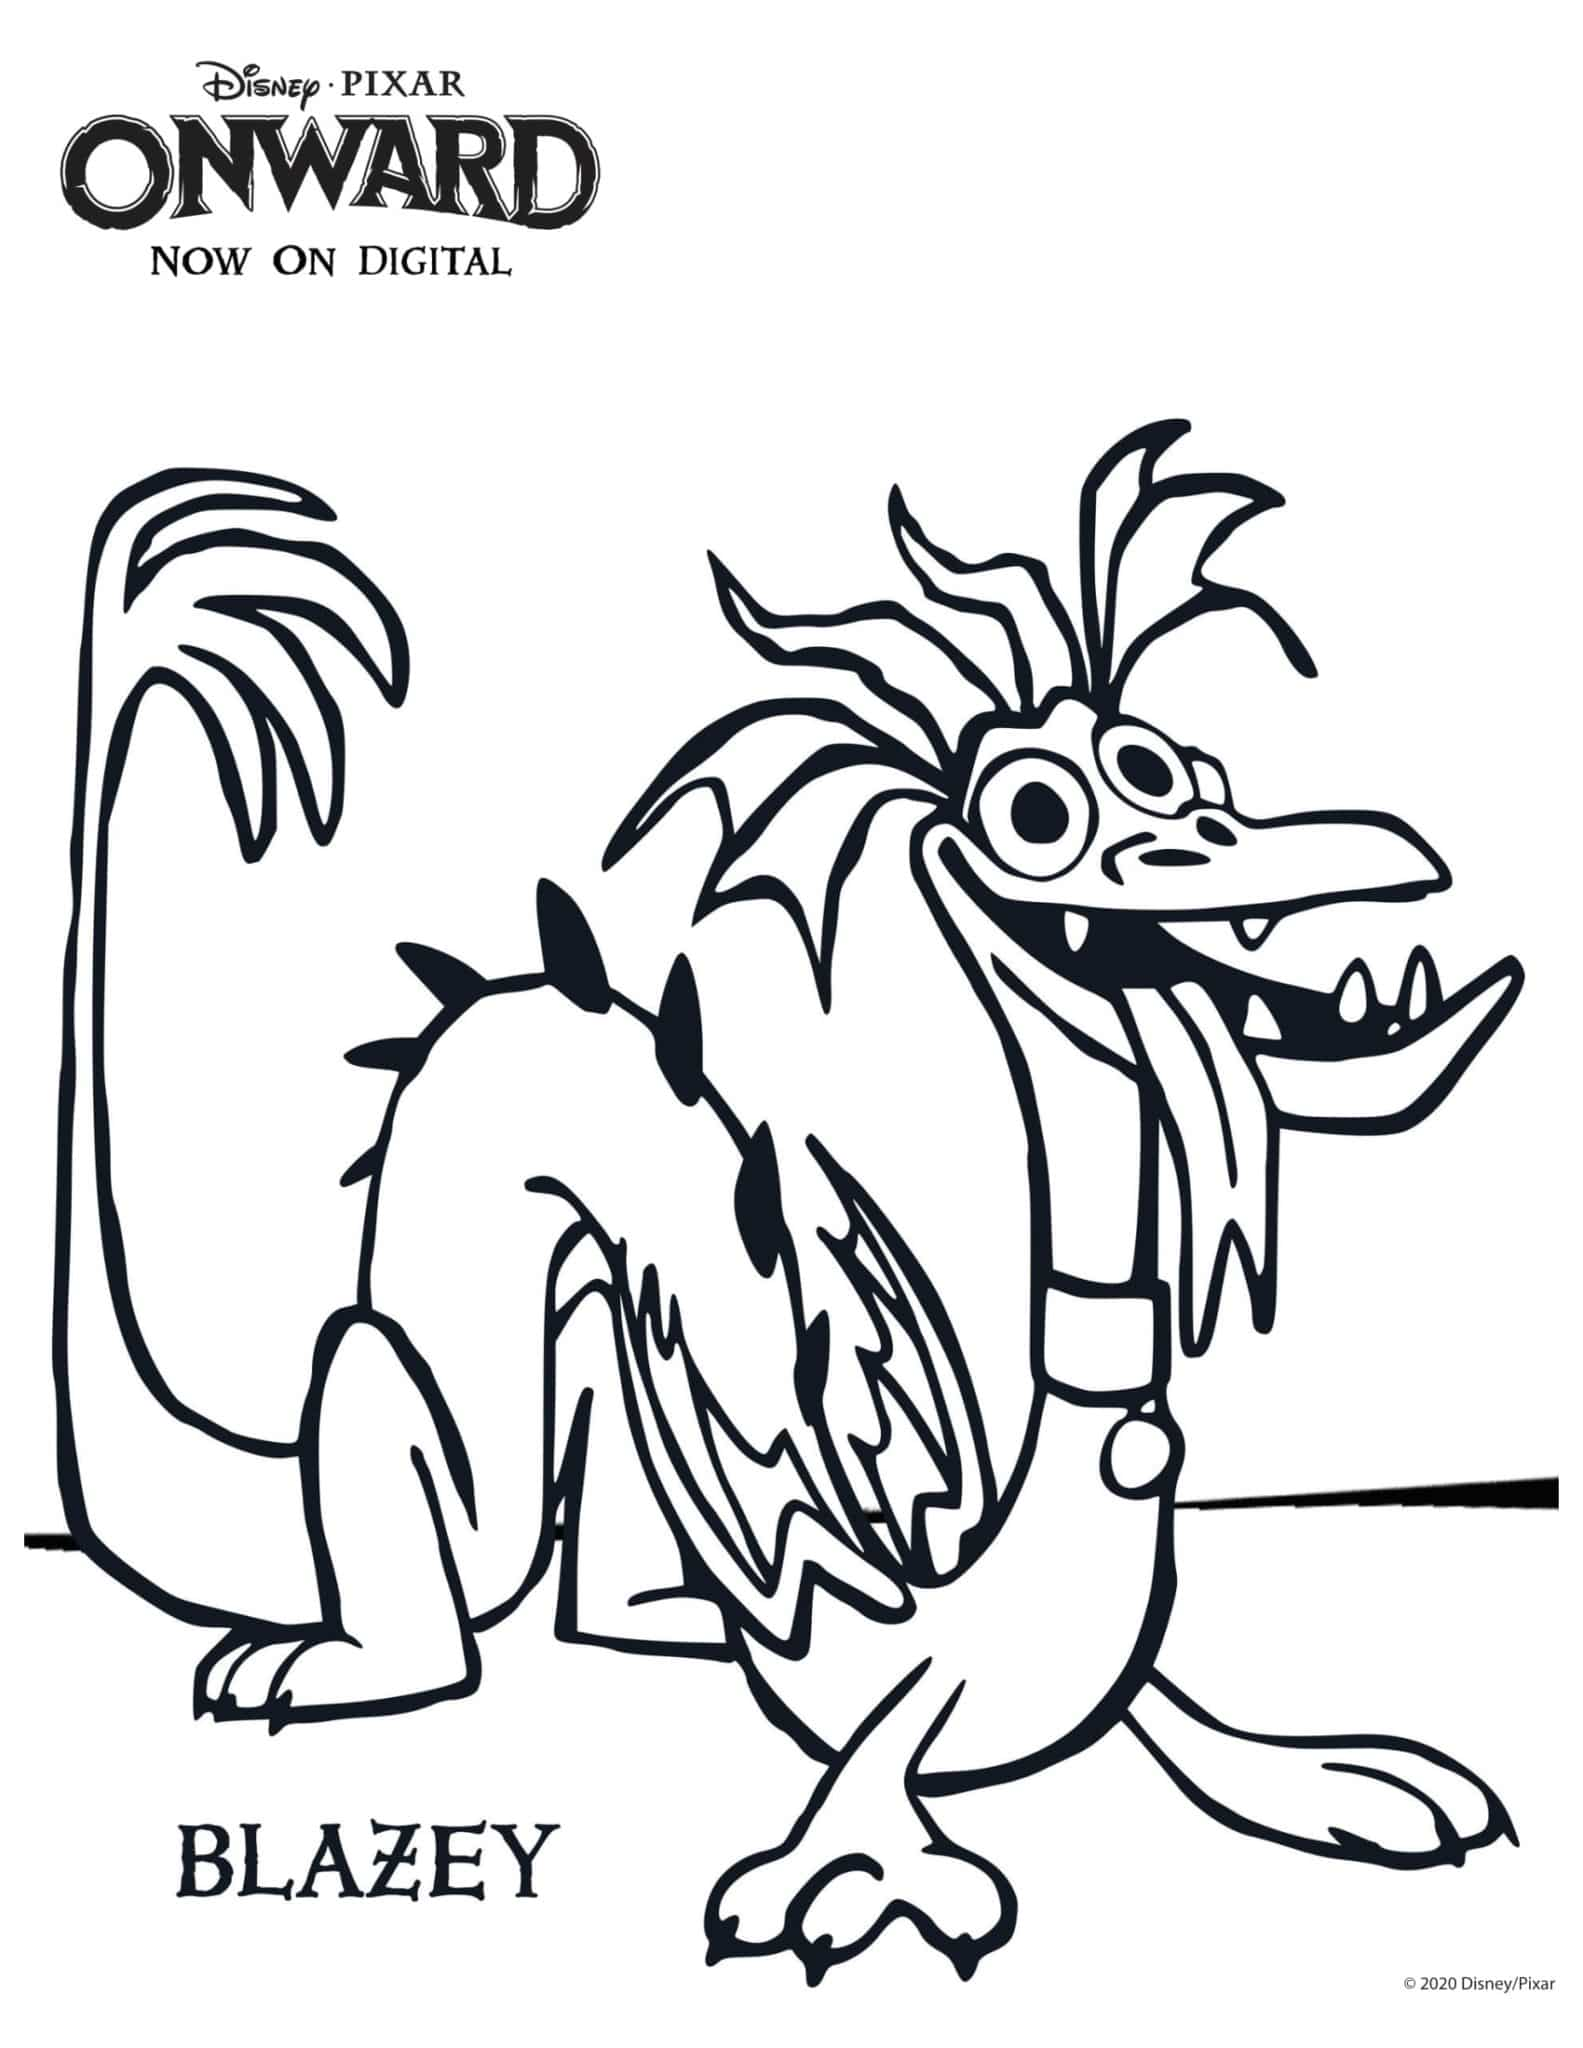 ONWARD Blazey Coloring Page and Activity Sheet